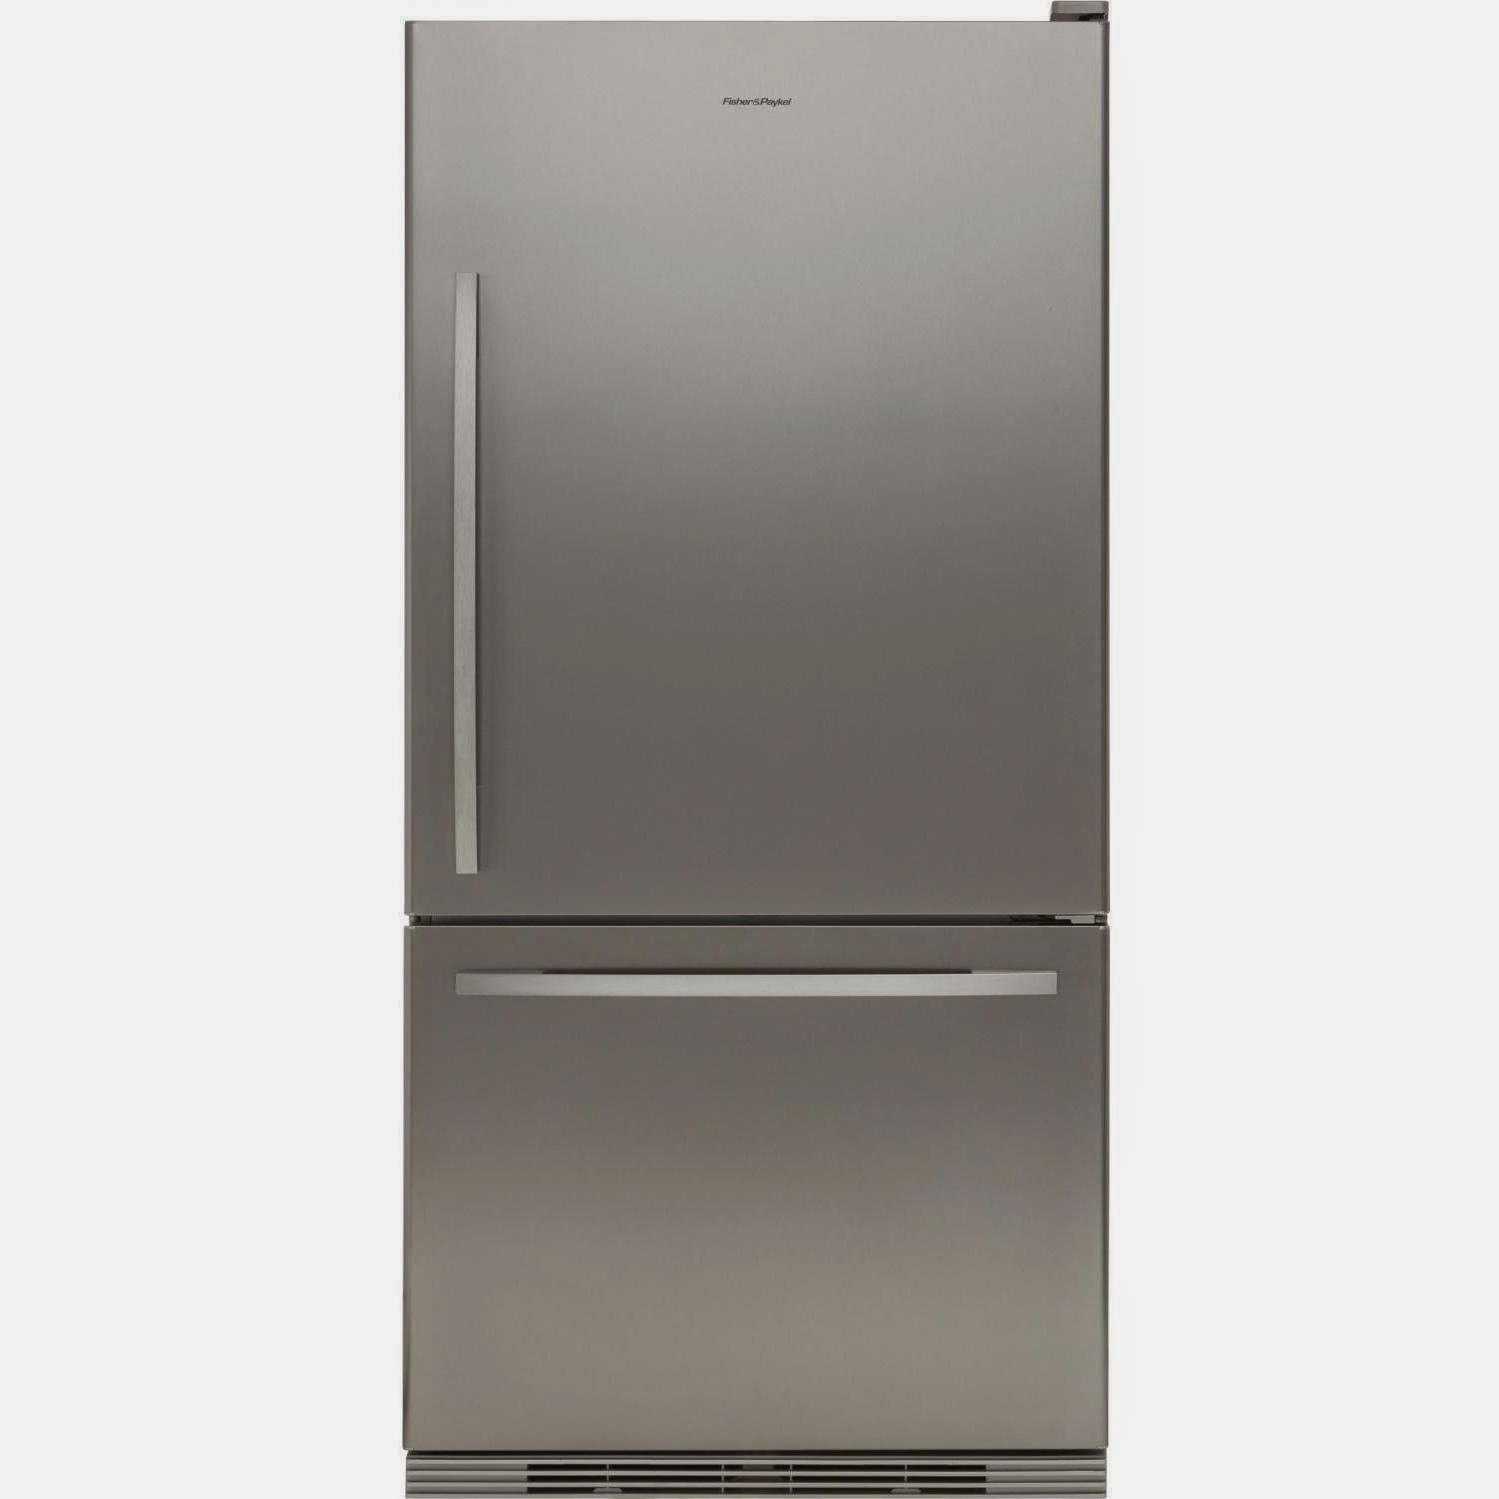 Best Buy Refridgerator Free Deals With Coupons